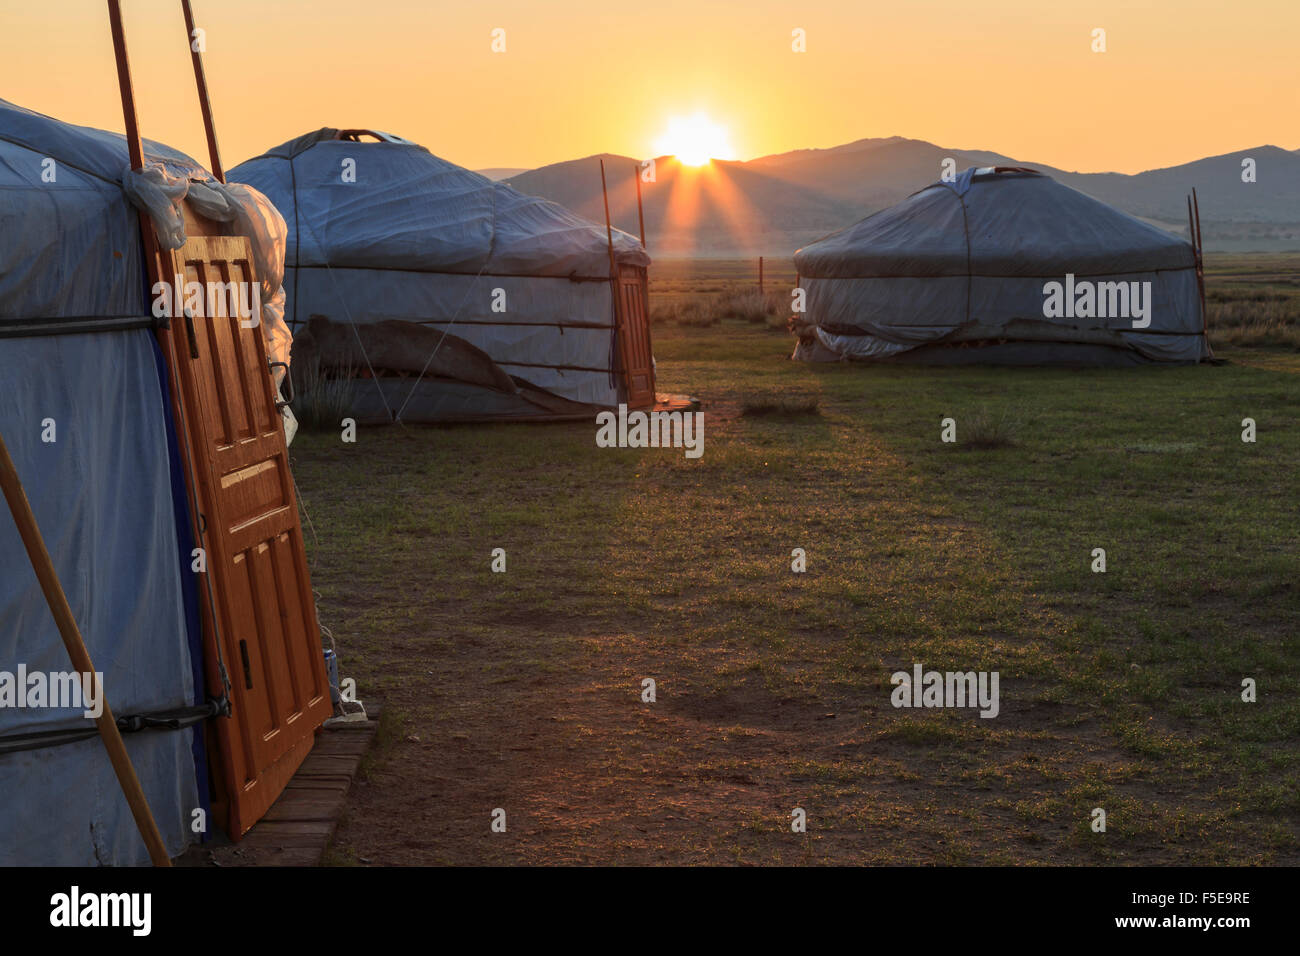 Sunrise over gers in summer, Nomad camp, Gurvanbulag, Bulgan, Northern Mongolia, Central Asia, Asia - Stock Image